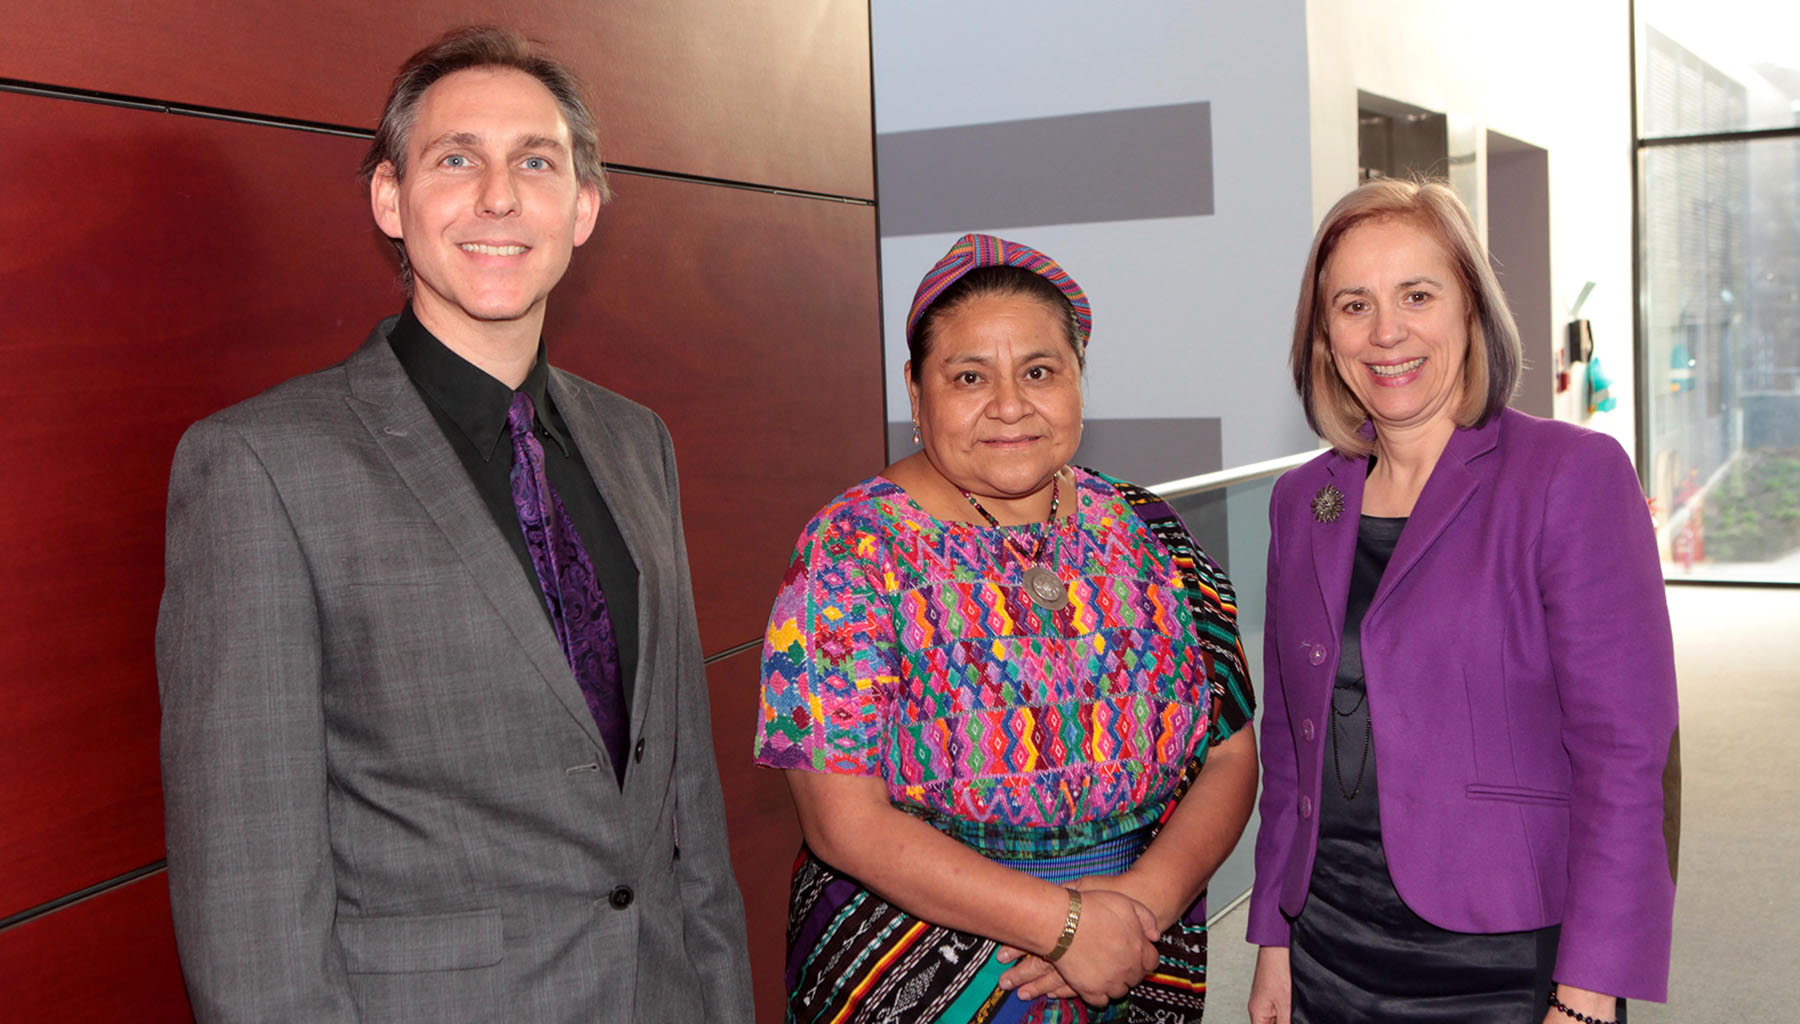 Religion and peacebuilding at Winchester: Peacejam 2016 image with Nobel Peace Laureate Rigoberta Menchu Tum